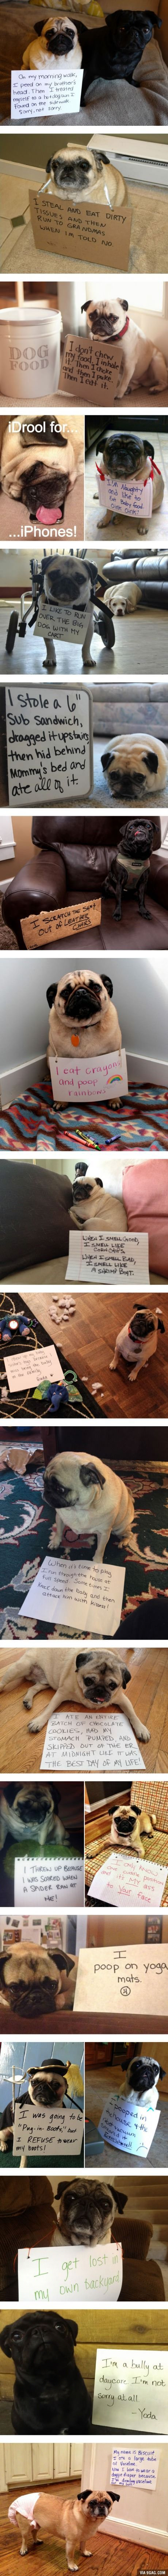 """Pug Shaming... Some of these are hilarious... The """"I only know one position"""" thing must be a pug trait."""